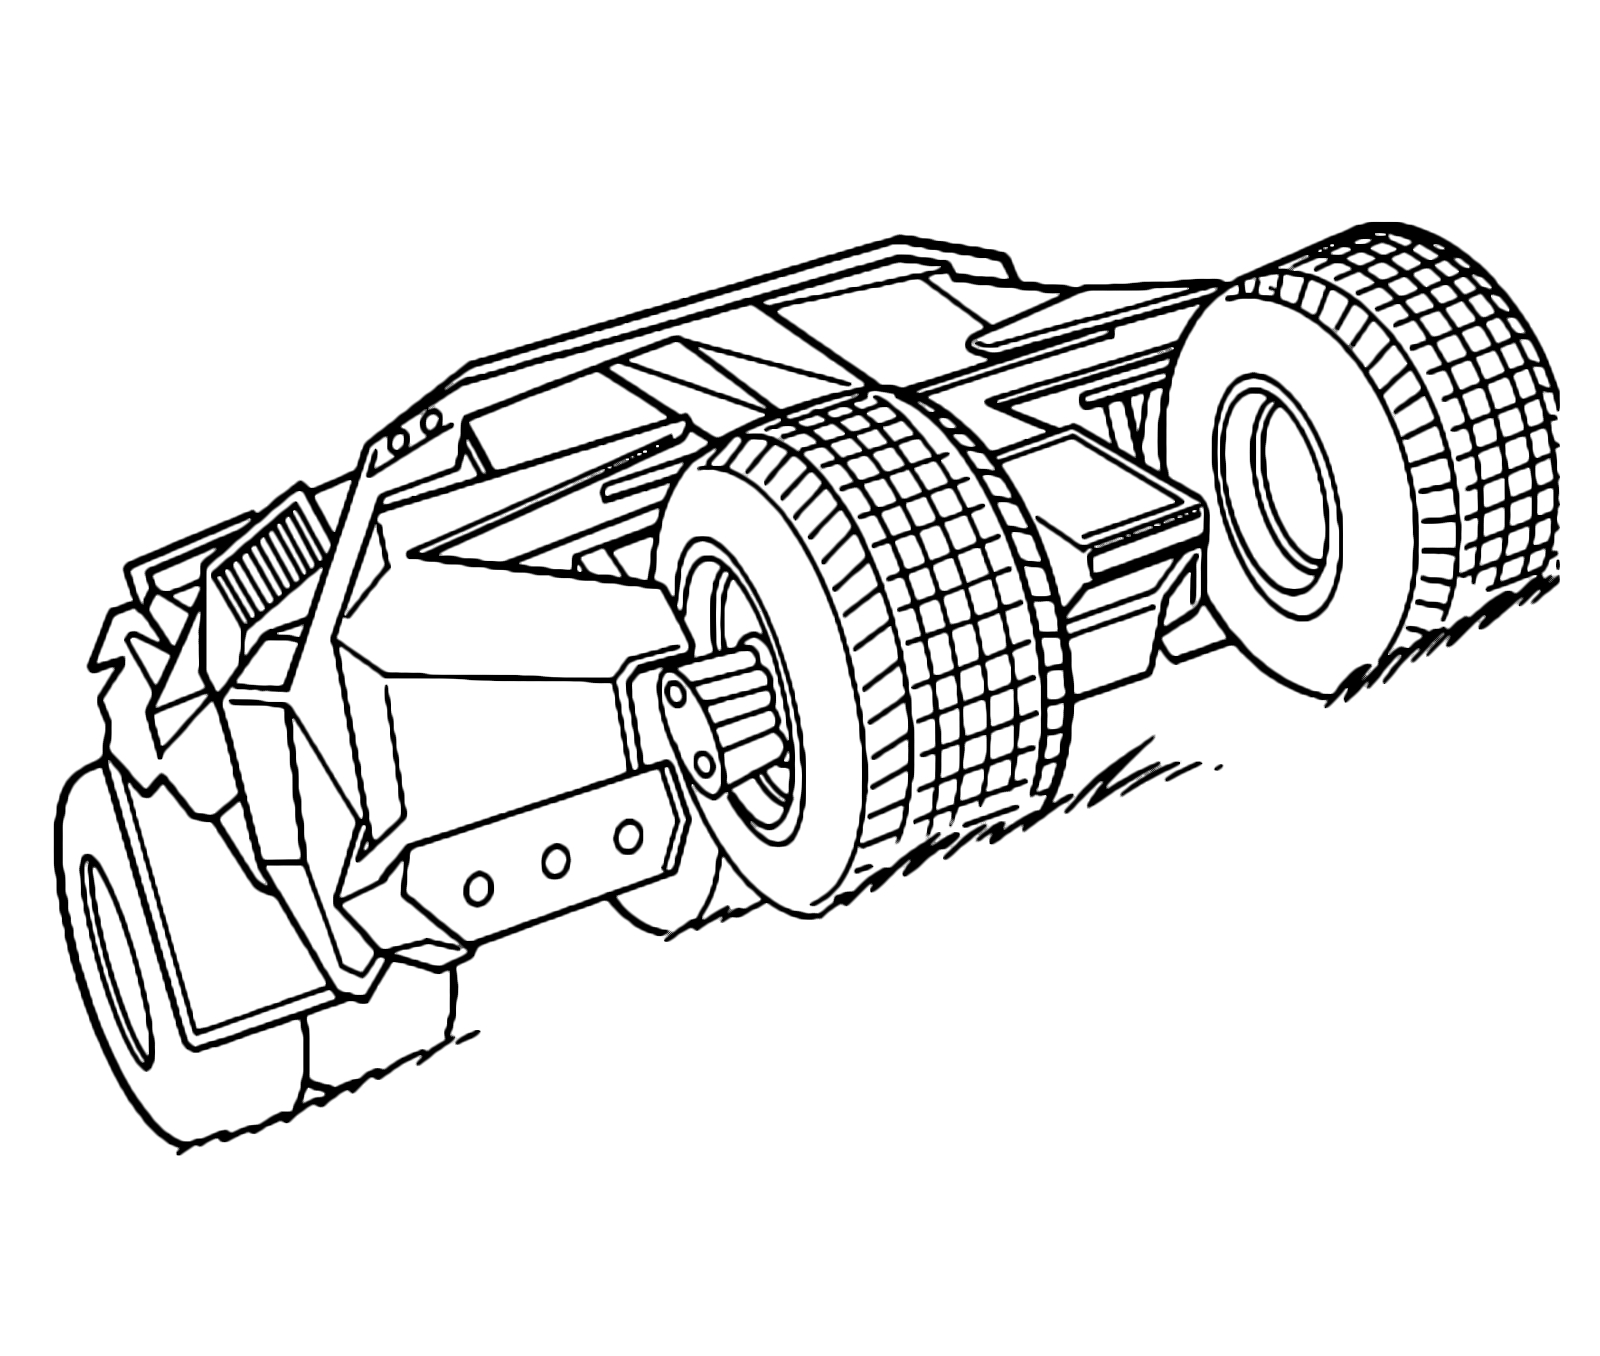 1600x1356 Batmobile Coloring Pages Selection Free Coloring Pages And Free